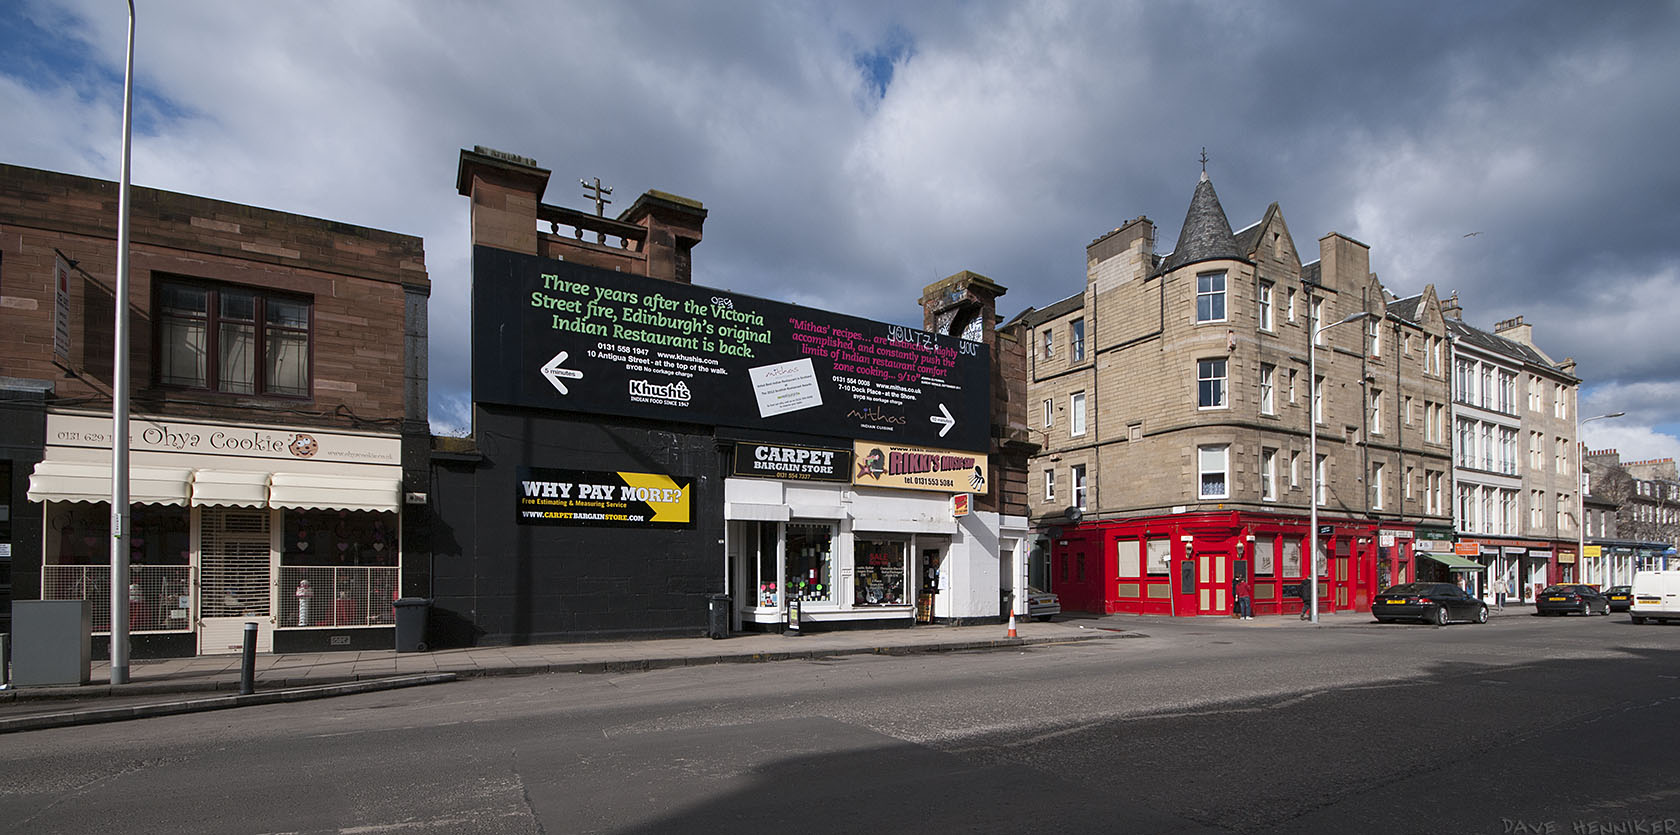 At the other end of the building is Jane Street, next to the remains of a railway bridge which once crossed Leith Walk.